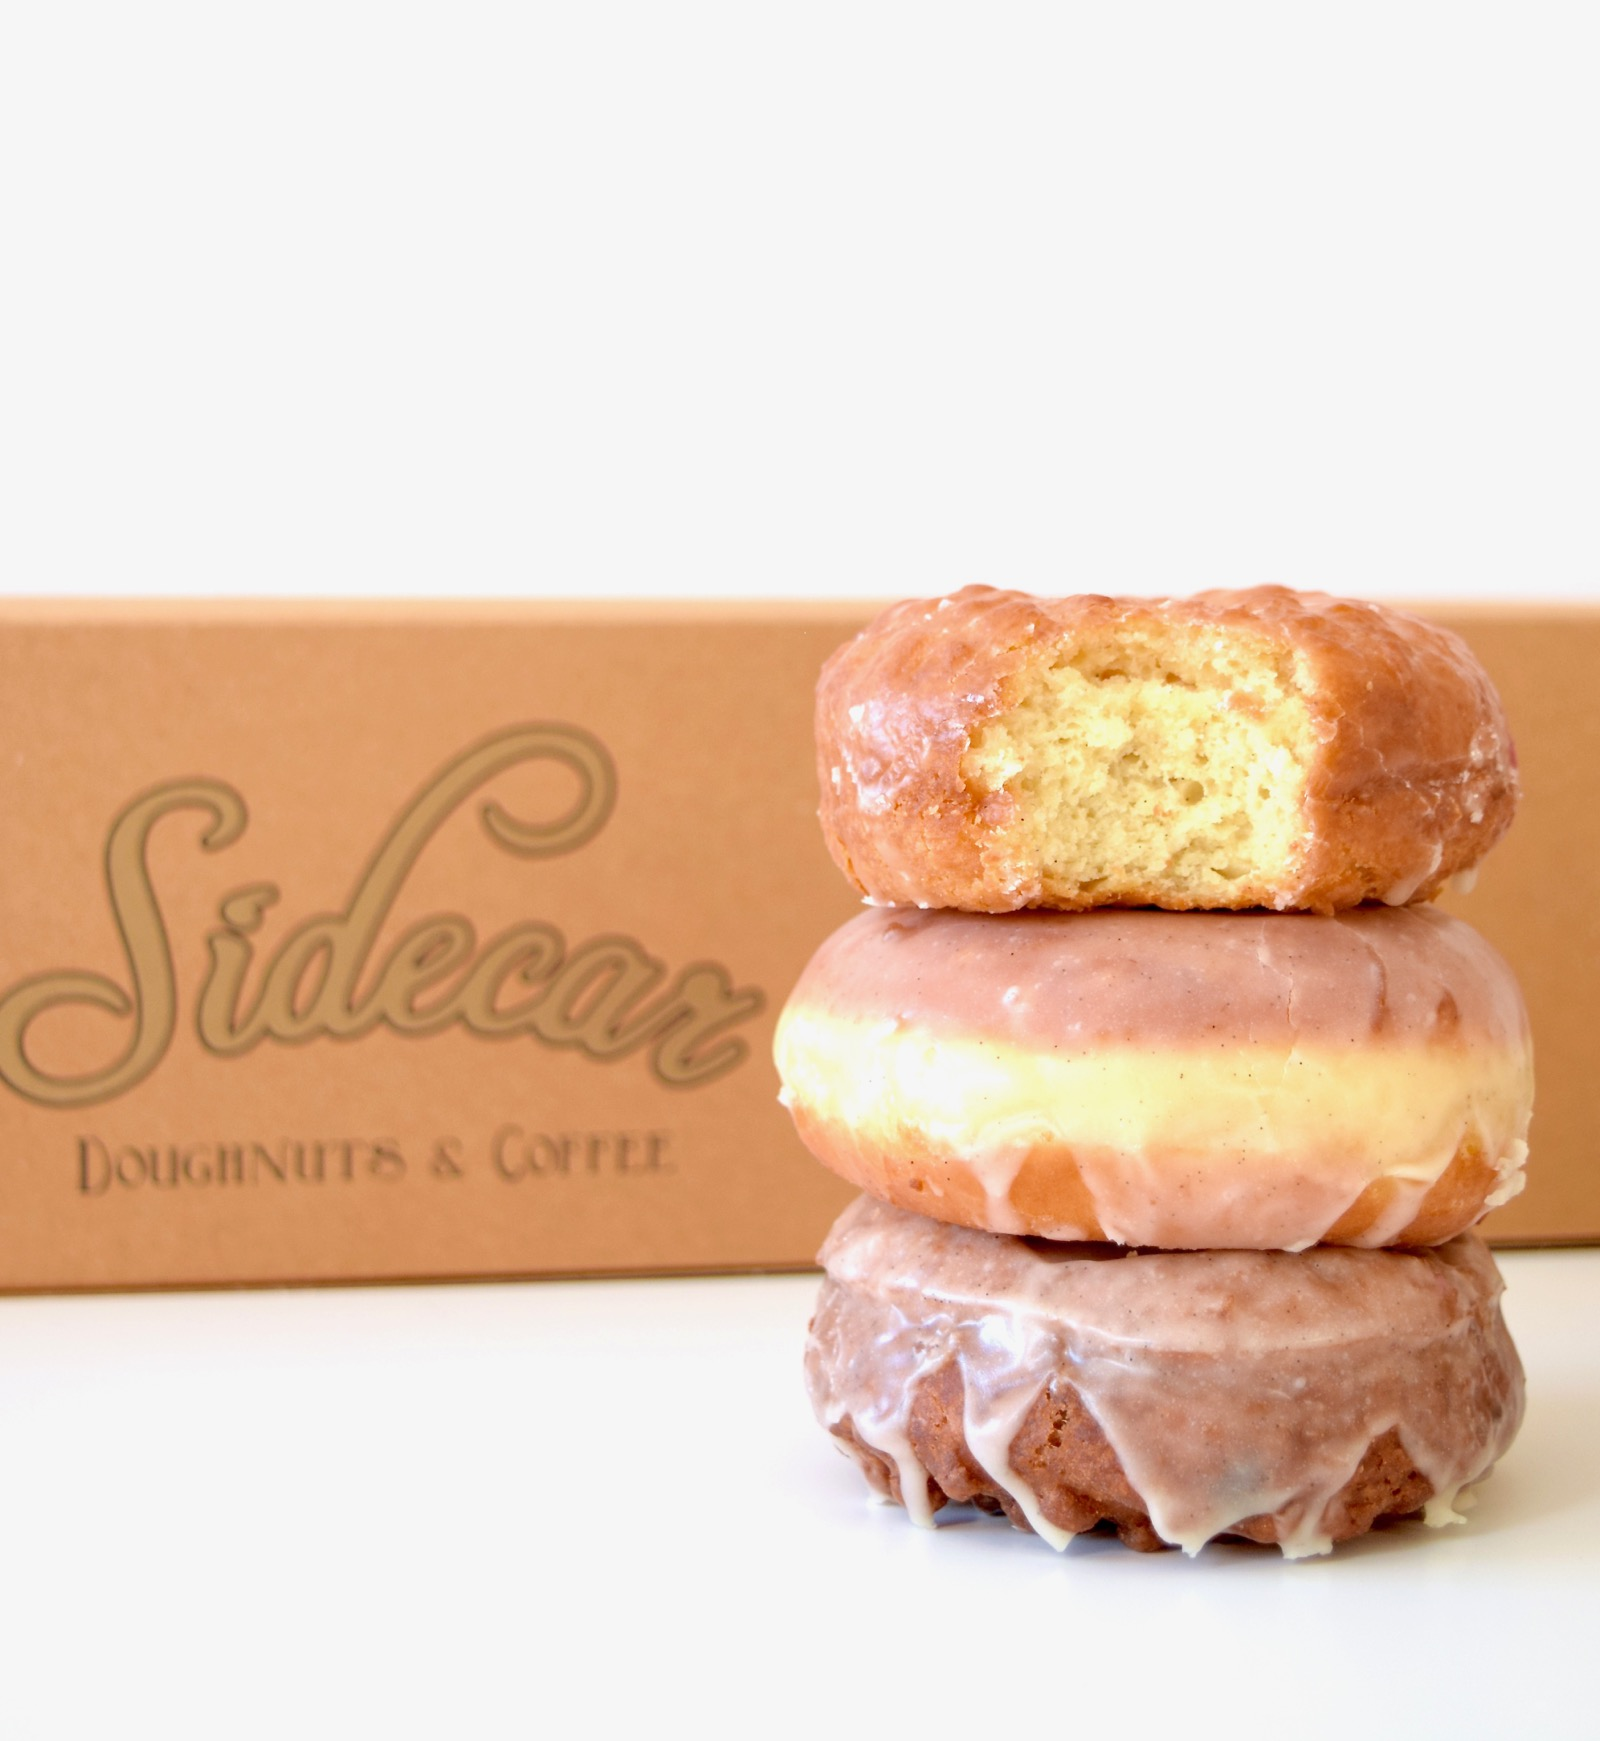 Sidecar Donuts Los Angeles